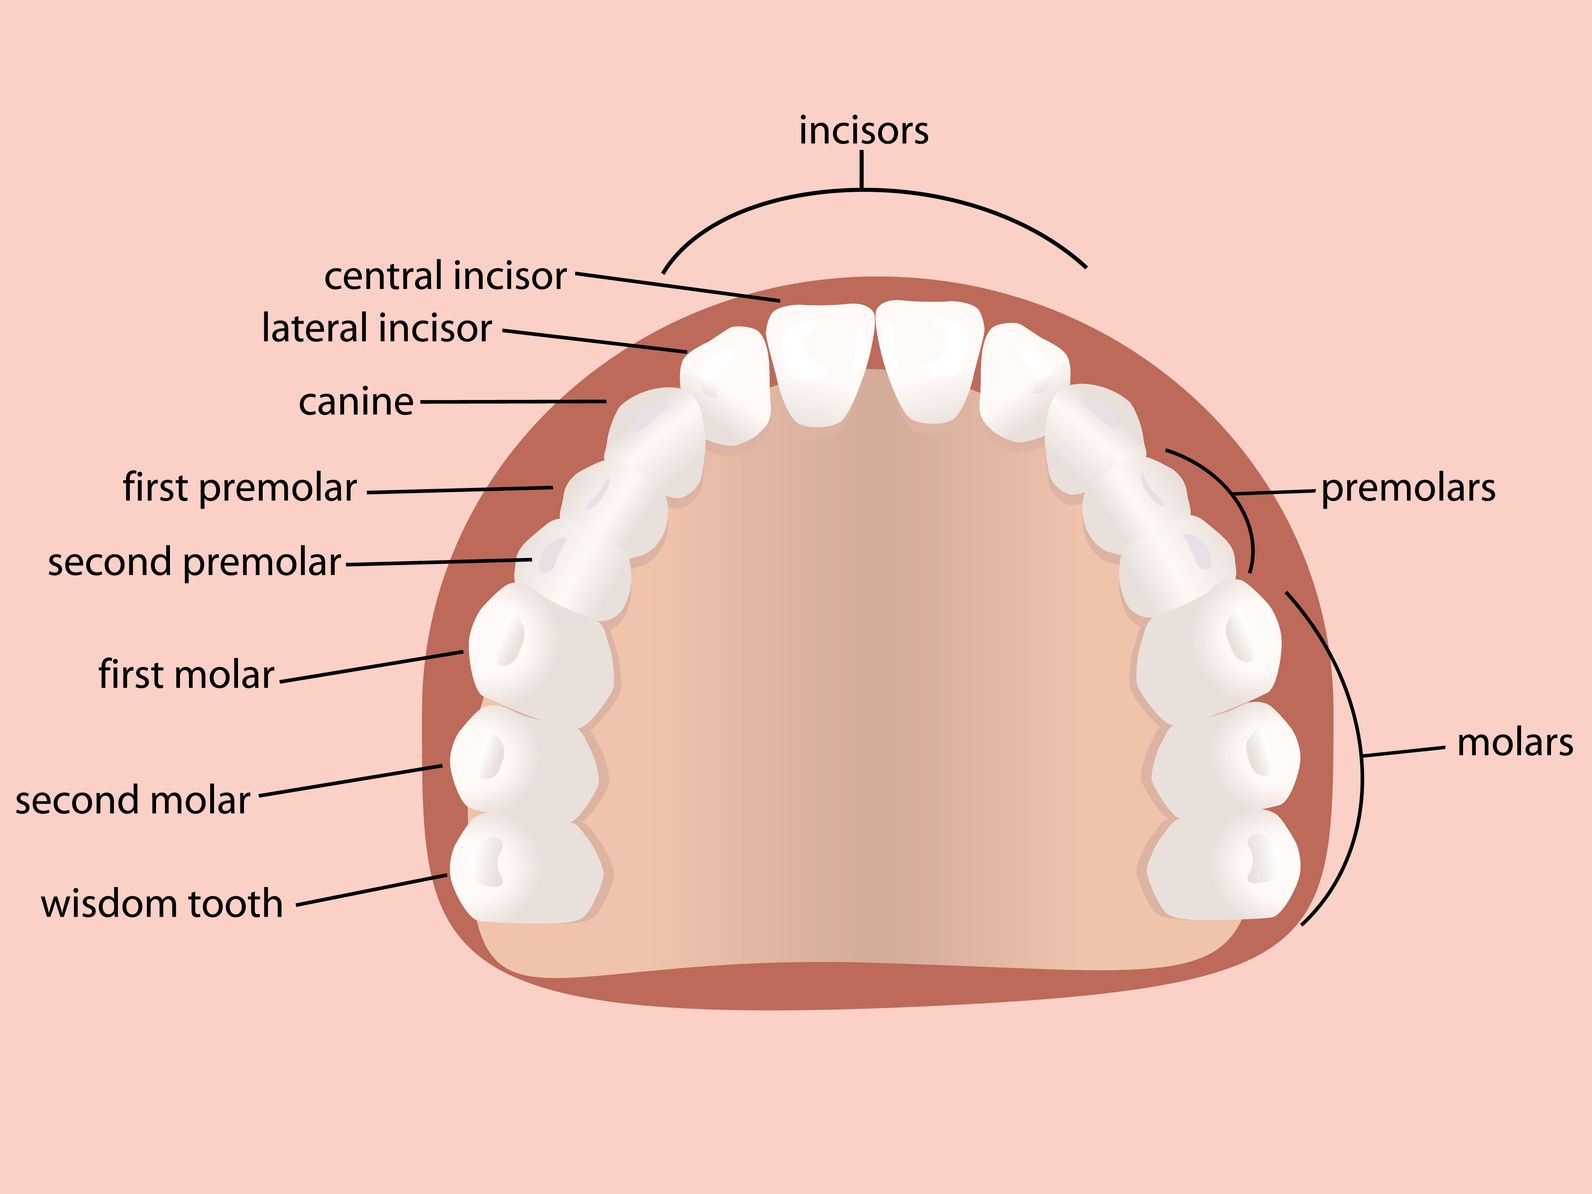 medium resolution of by the age of 18 the average adult has 32 teeth 16 teeth on top and 16 teeth on bottom each tooth in the mouth has a specific name and function